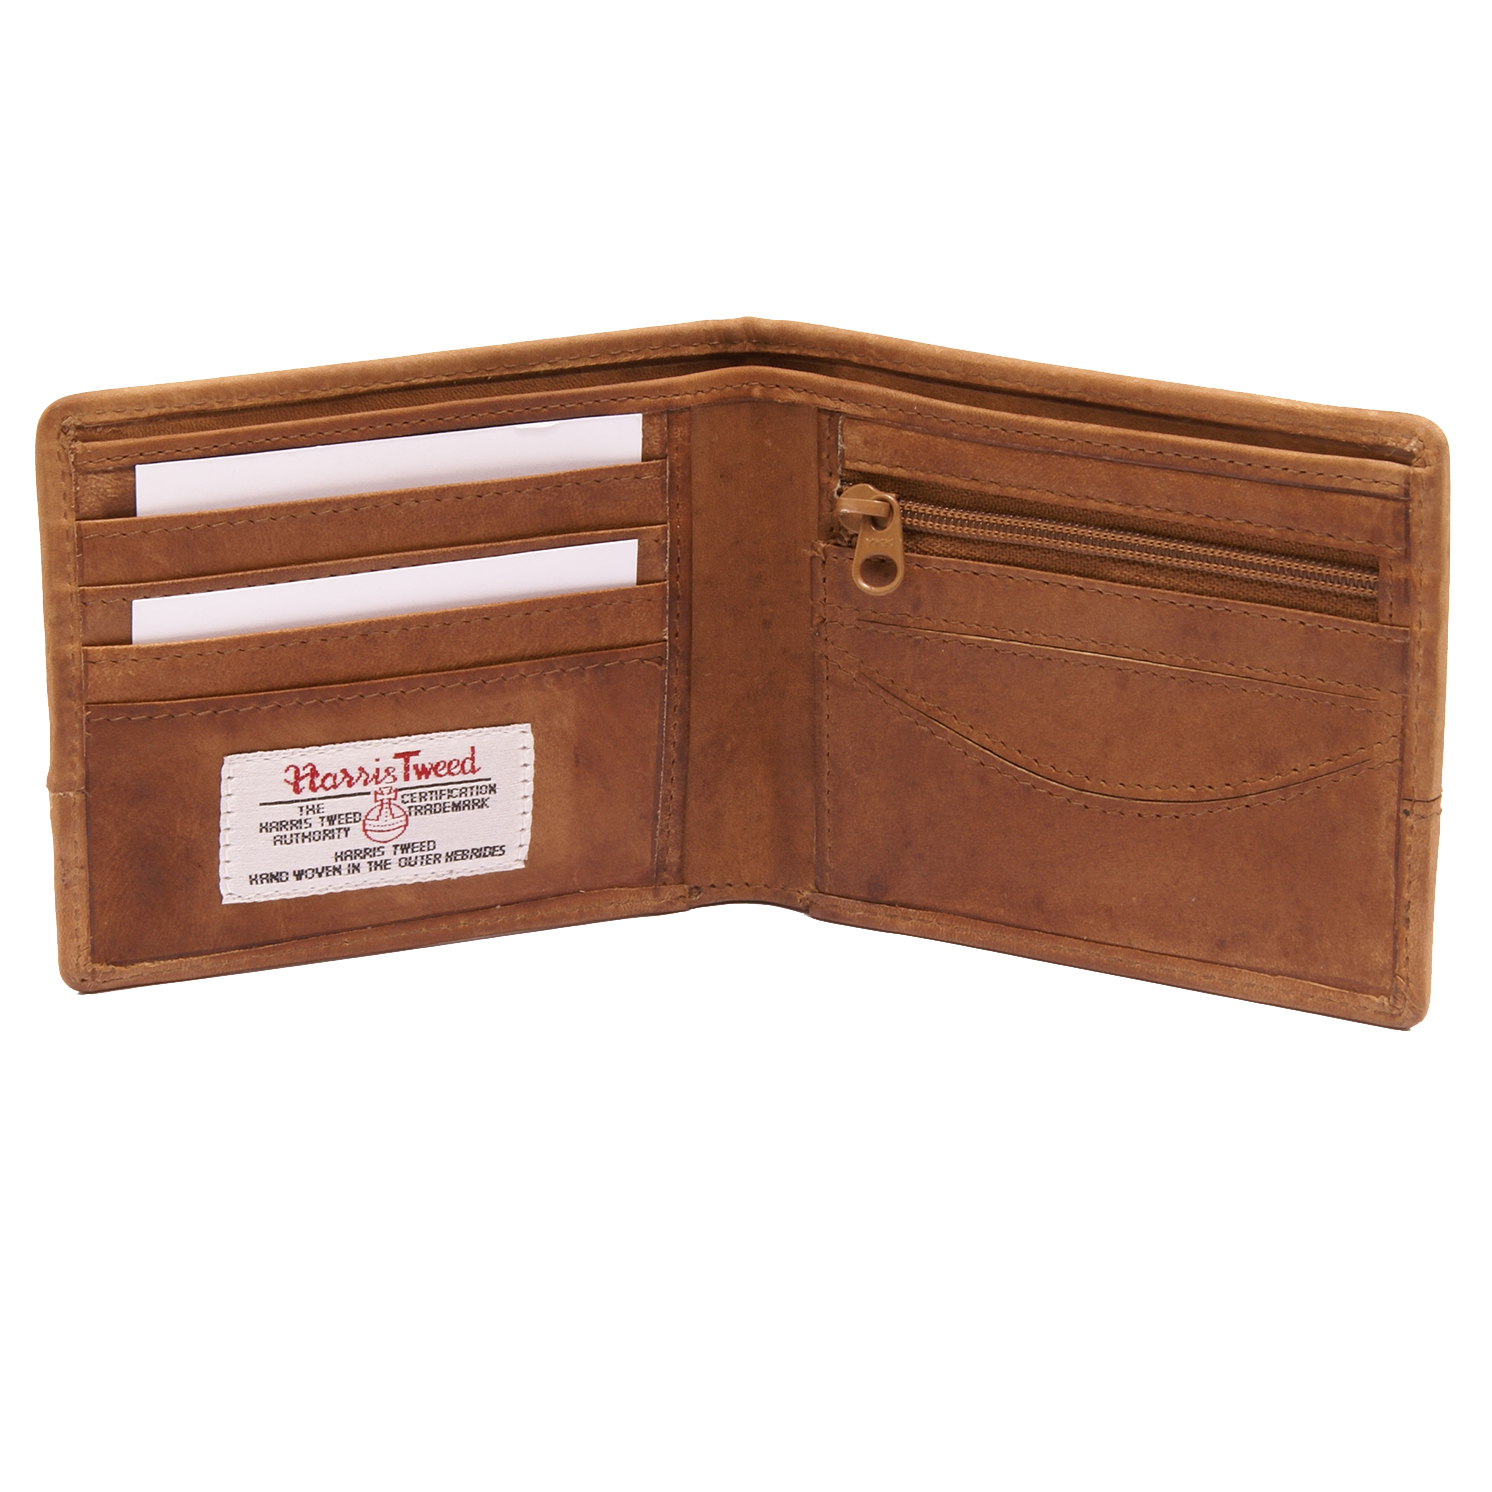 The British Bag Company – Stornoway Harris Tweed Wallet with Tan Leather Trim